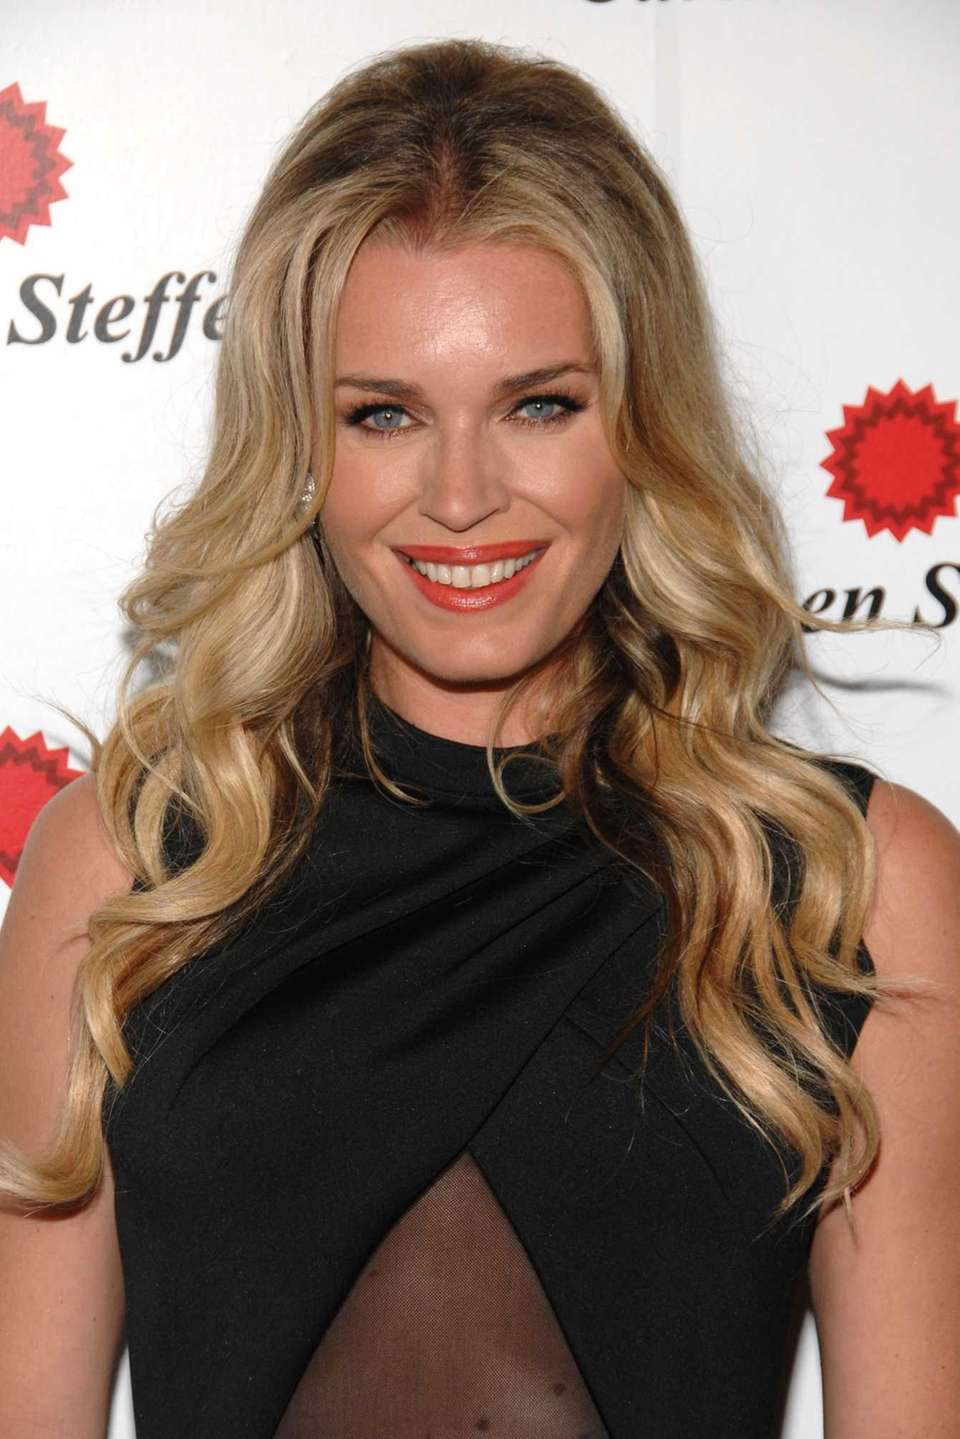 Rebecca Romijn made a name for herself in